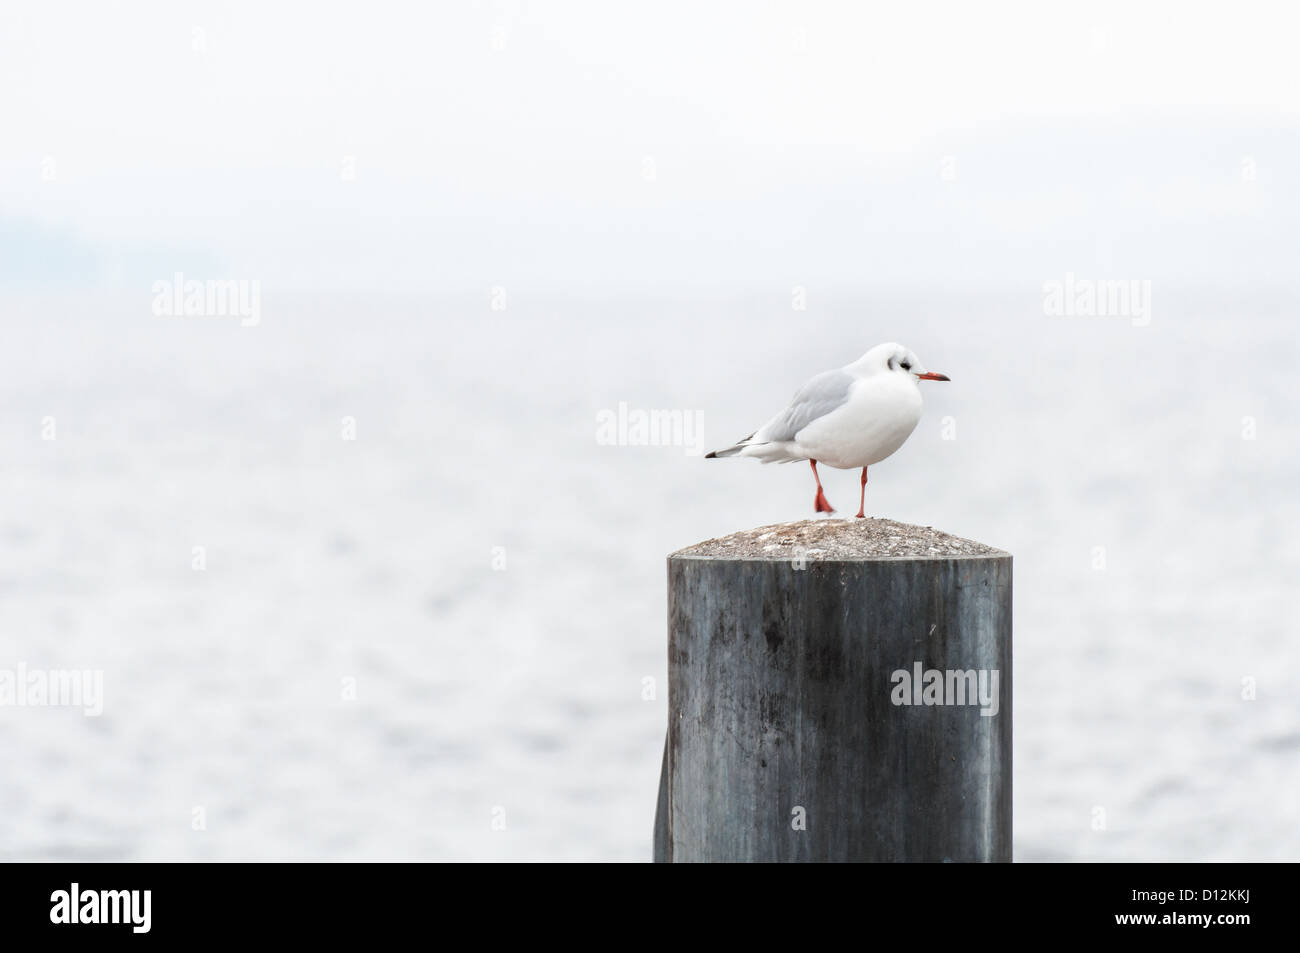 Seagull standing on a pole. - Stock Image